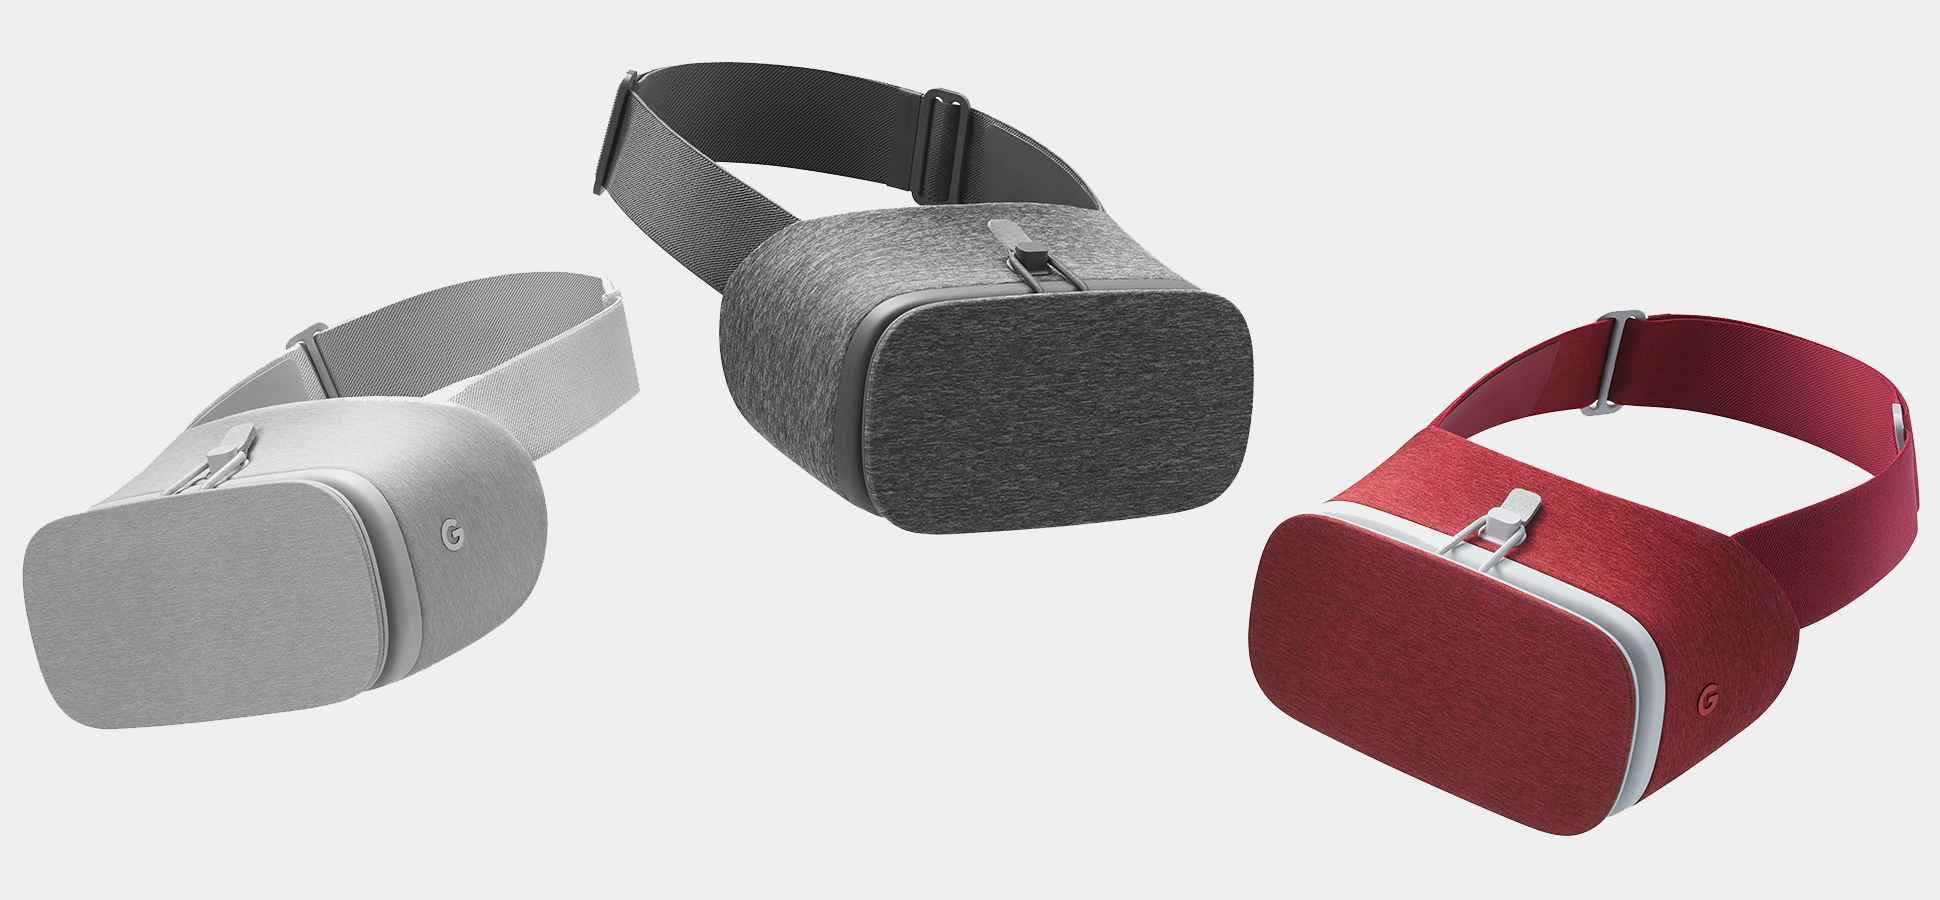 Google Reveals Daydream View, Its New Virtual Reality